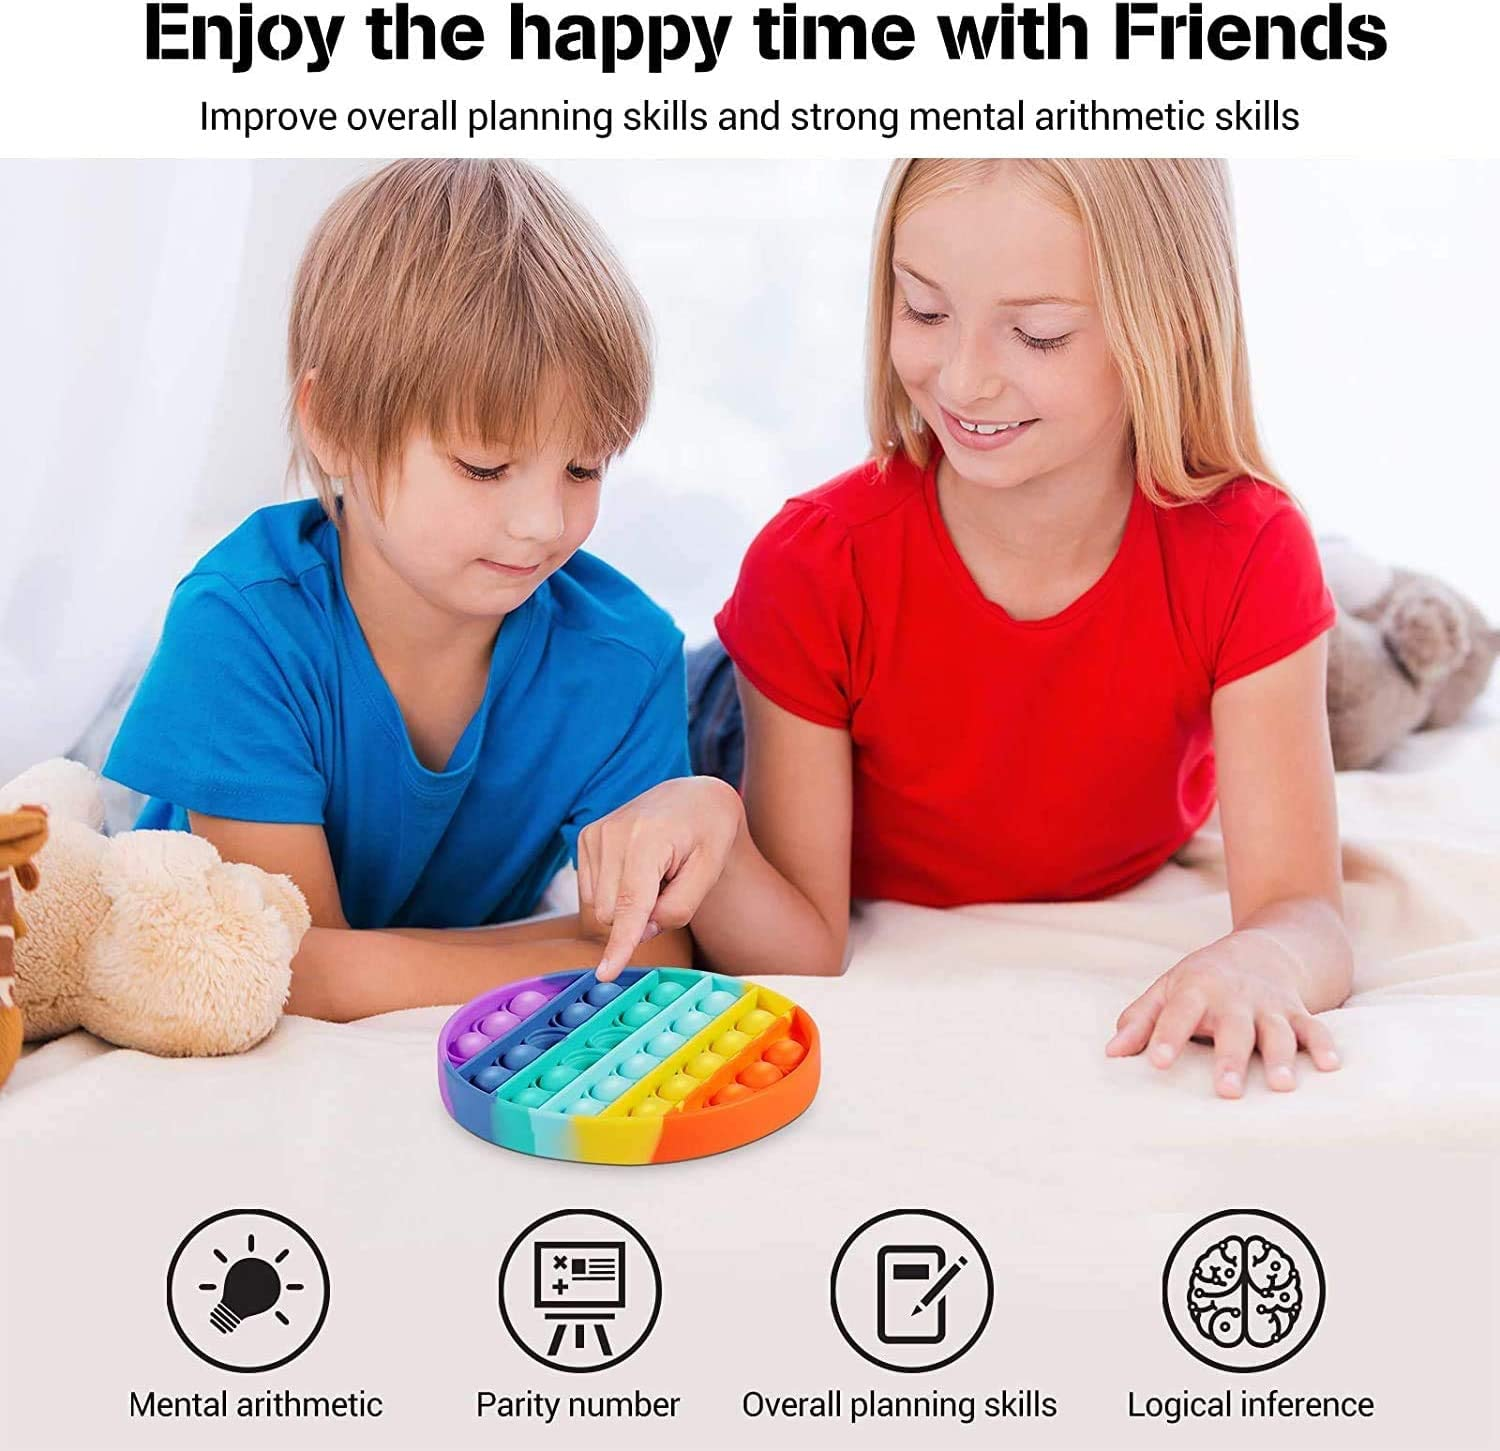 Autism Special Needs Stress Reliever Anxiety Relief Toys Squeeze Extrusion Bubble Fidget Sensory Toys Rainbow 2 Pcs Rainbow Push pop Bubble Sensory Fidget Toy